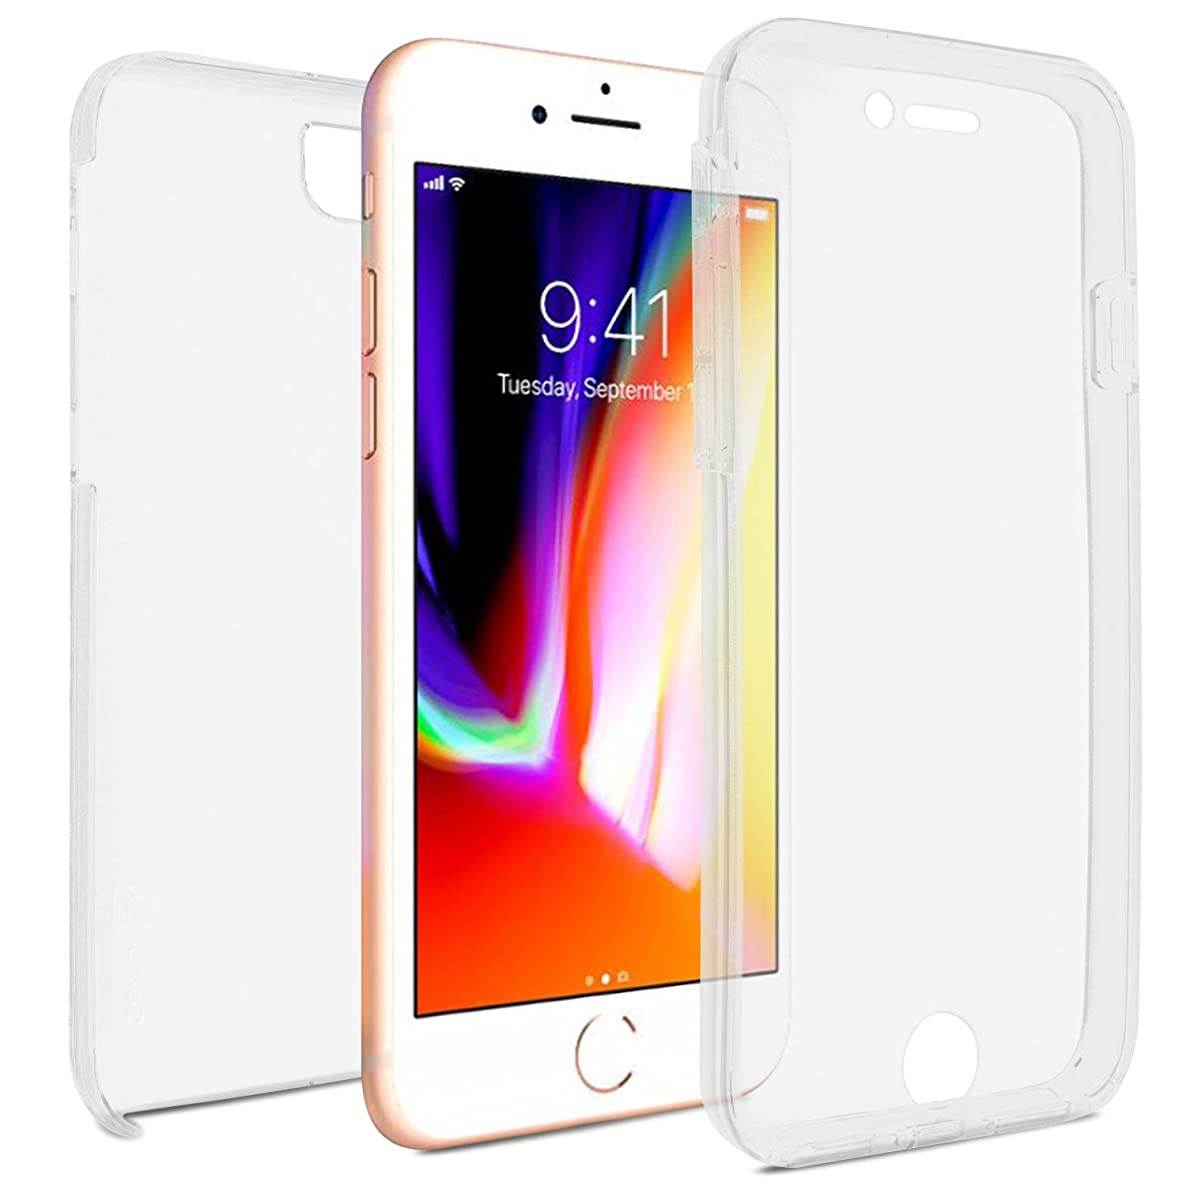 CoverON SlimGuard Fit iPhone 8 Plus Full Body Case, iPhone 7 Plus Fully Body Case, Premium Slim Protective Hard Polycarbonate and TPU Rubber Hybrid Front and Back Cover - Clear